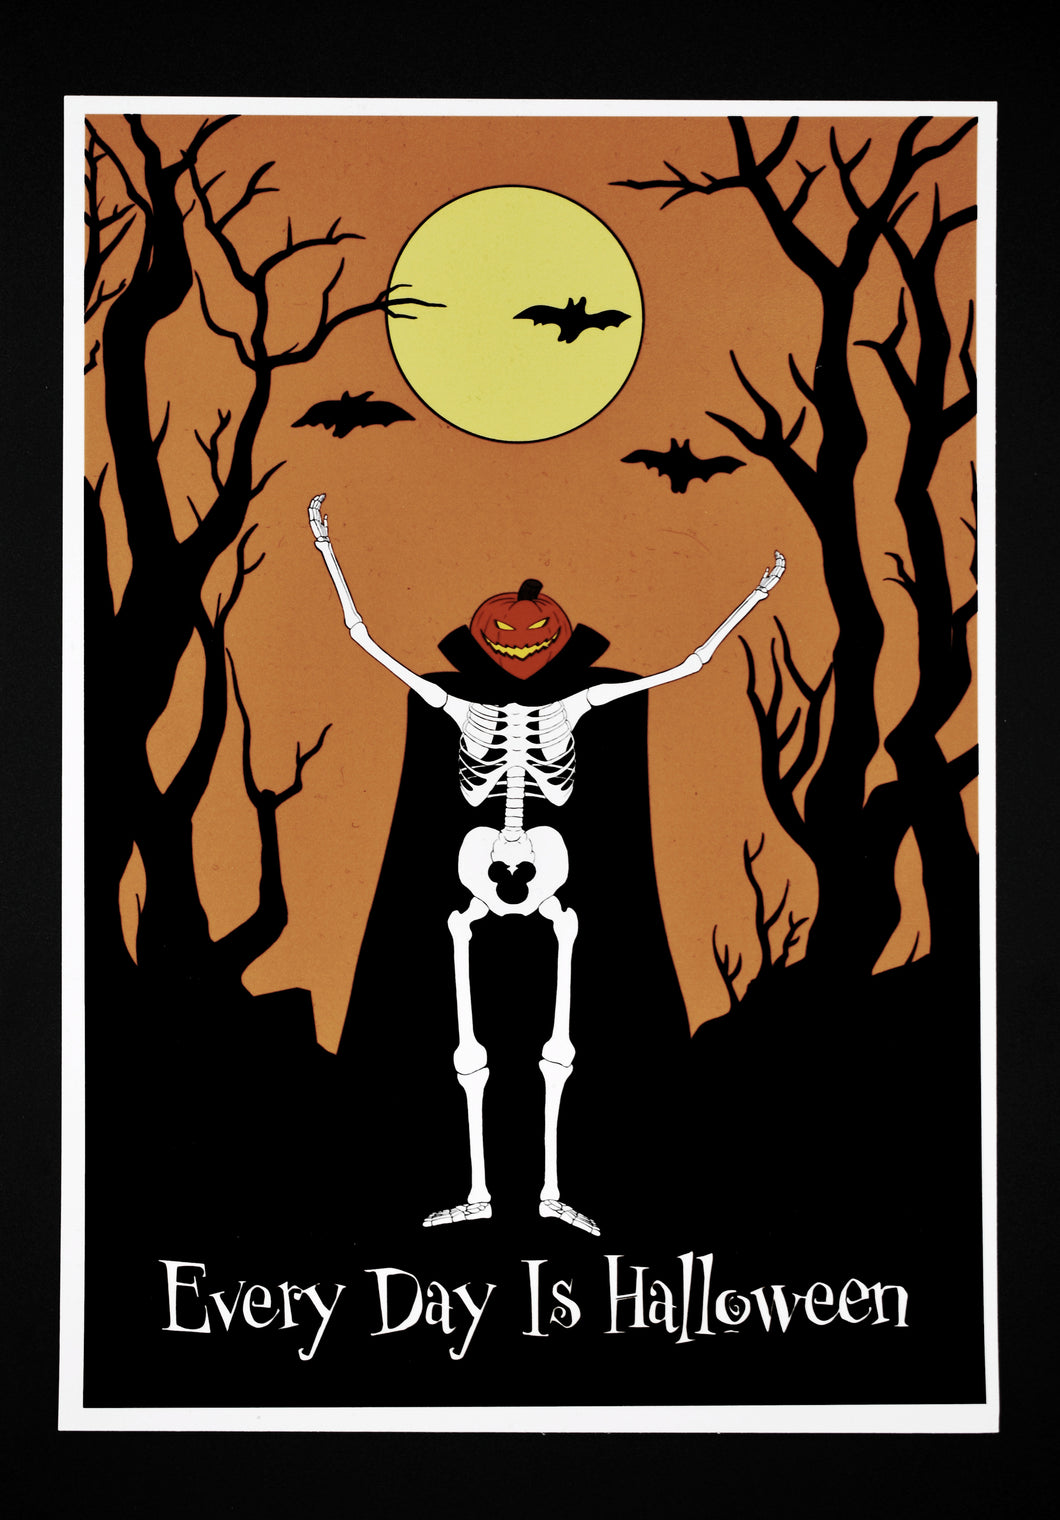 Every Day is Halloween - A5 Art Print